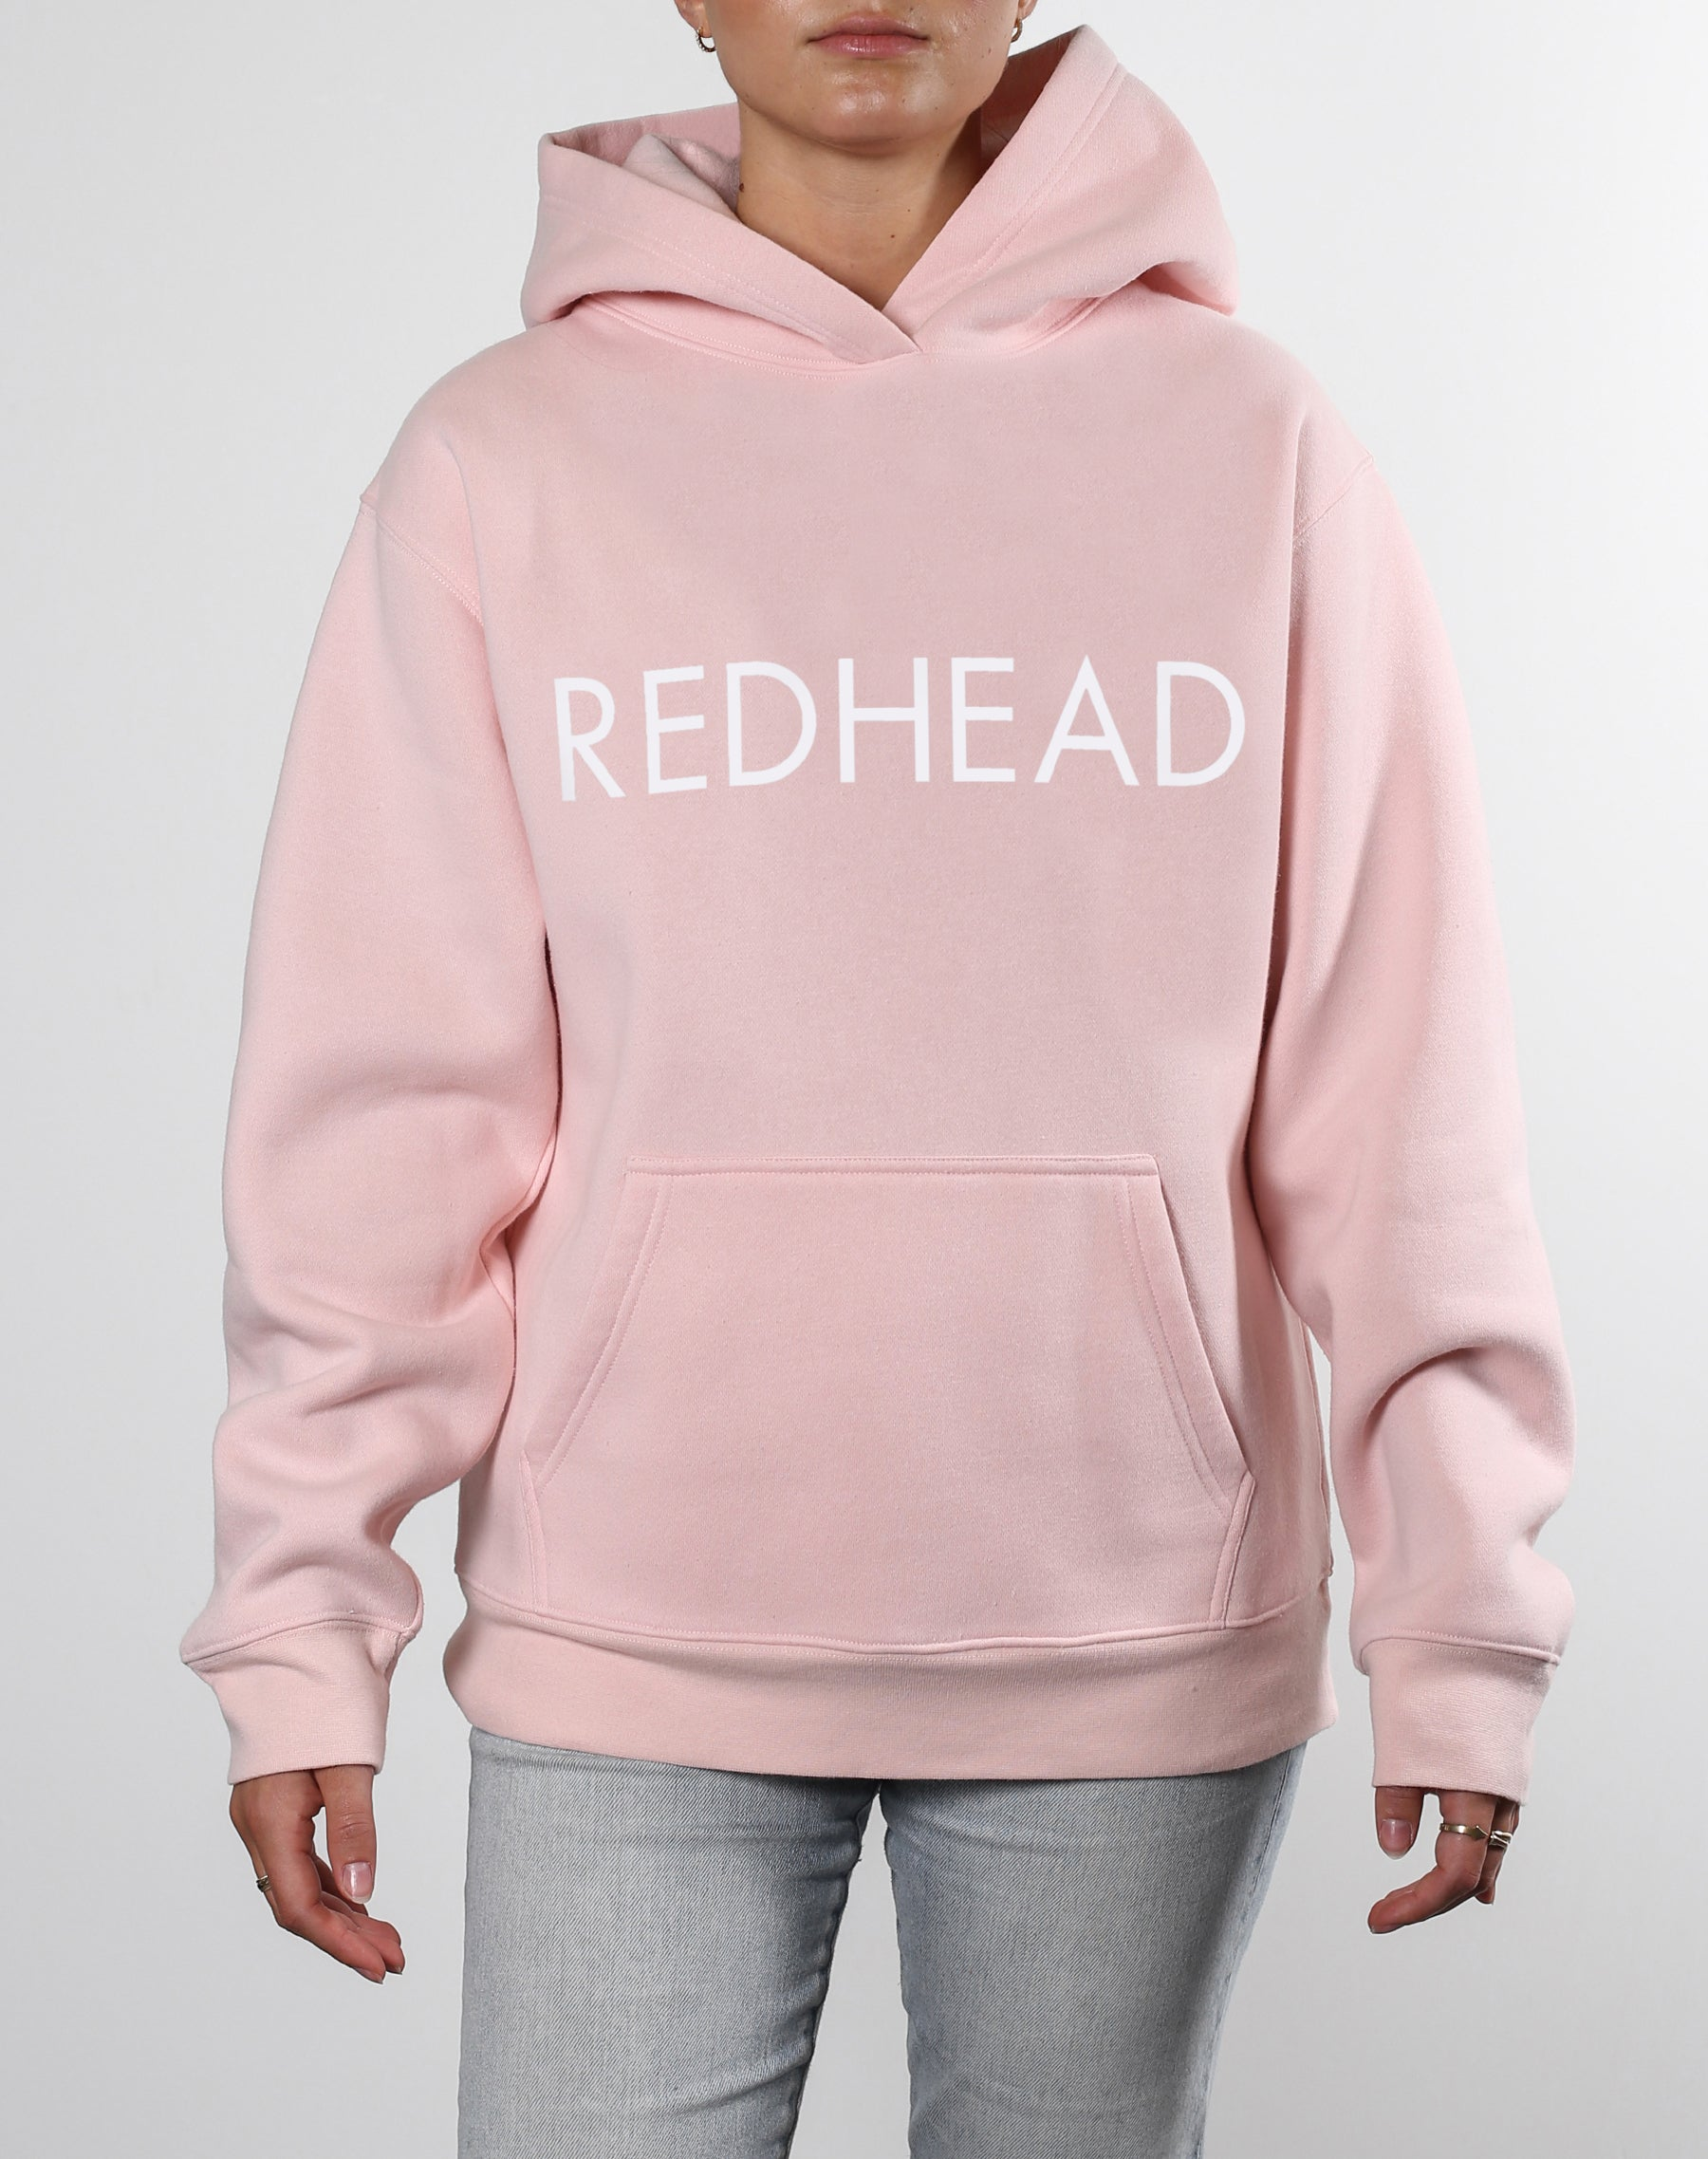 This is an Ecommerce photo of a model wearing the  RedHead Classic Hoodie in Ballet Slipper by Brunette the Label